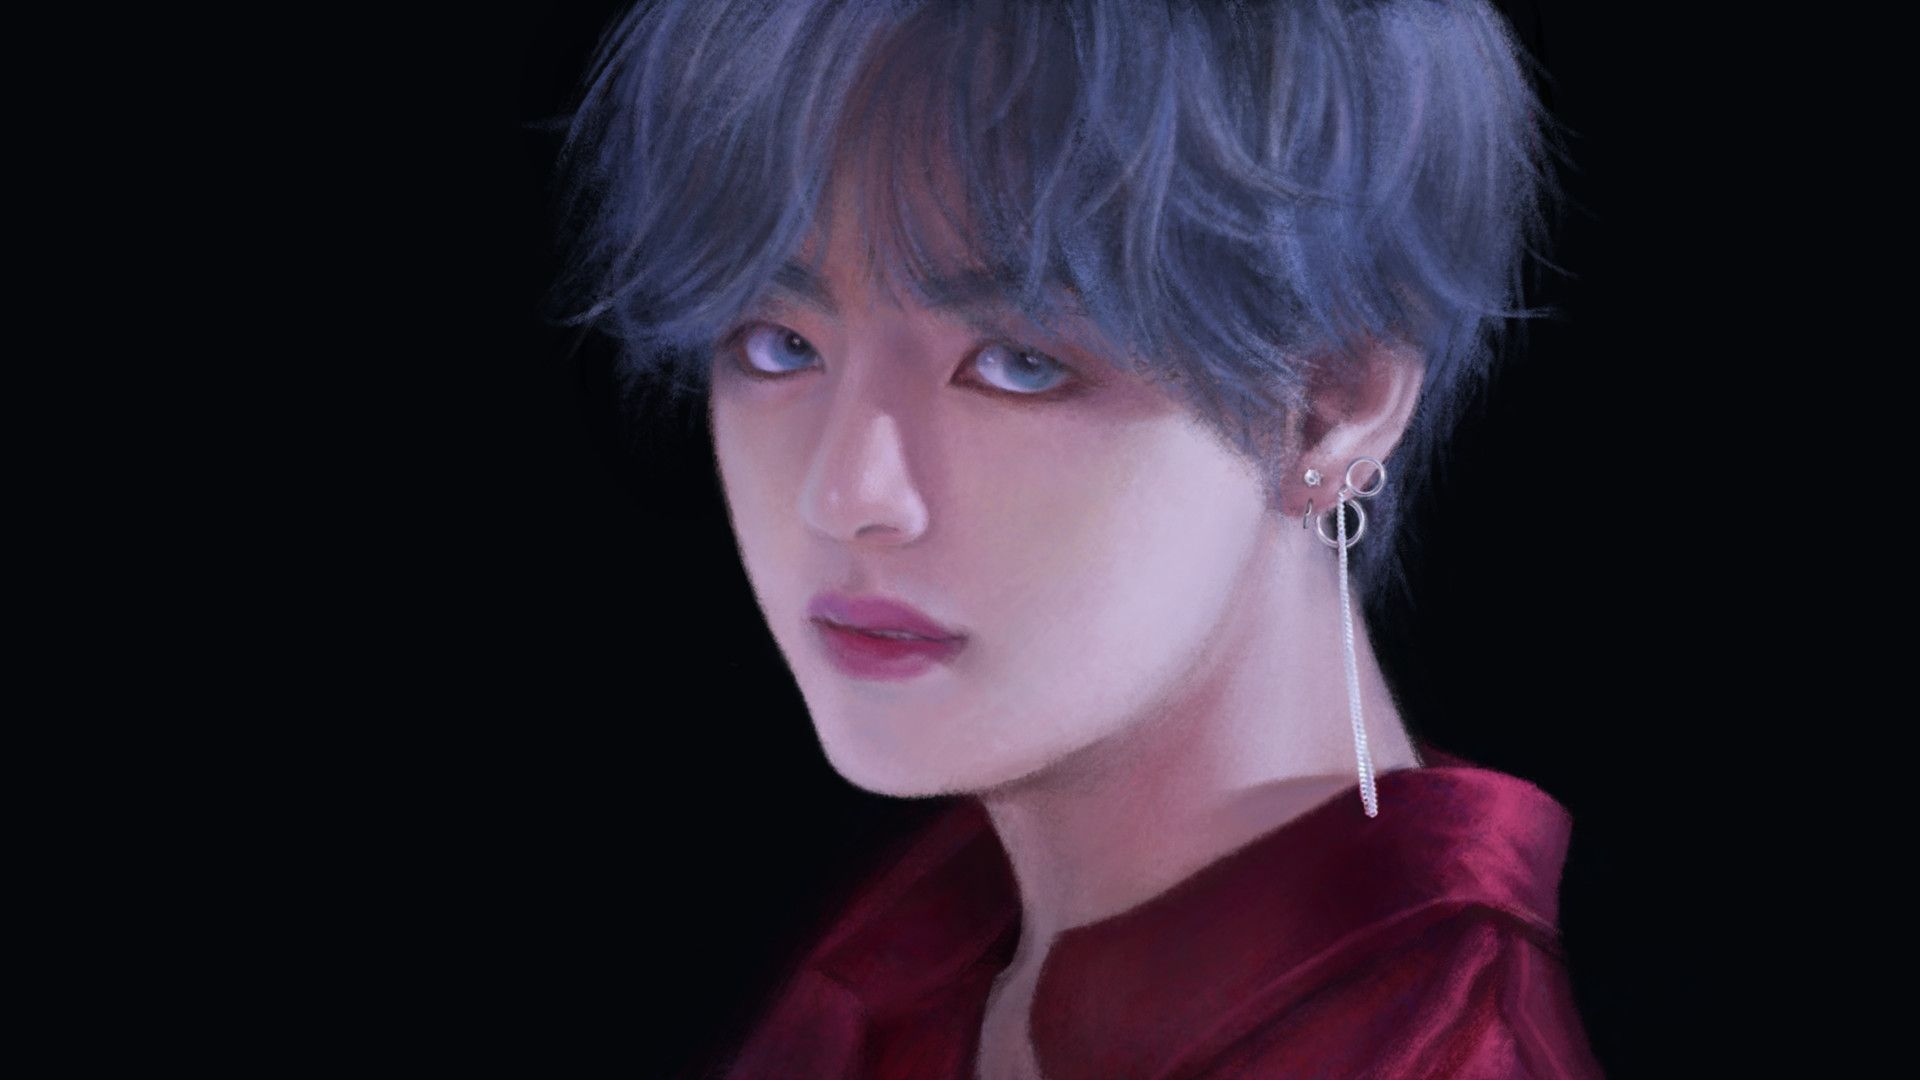 1920x1080 Gambar Anime Bts Hd 28 Anime Movie Bts V Desktop Wallpaper Foto Taehyung Fanart Kim Taehyung Taehyung